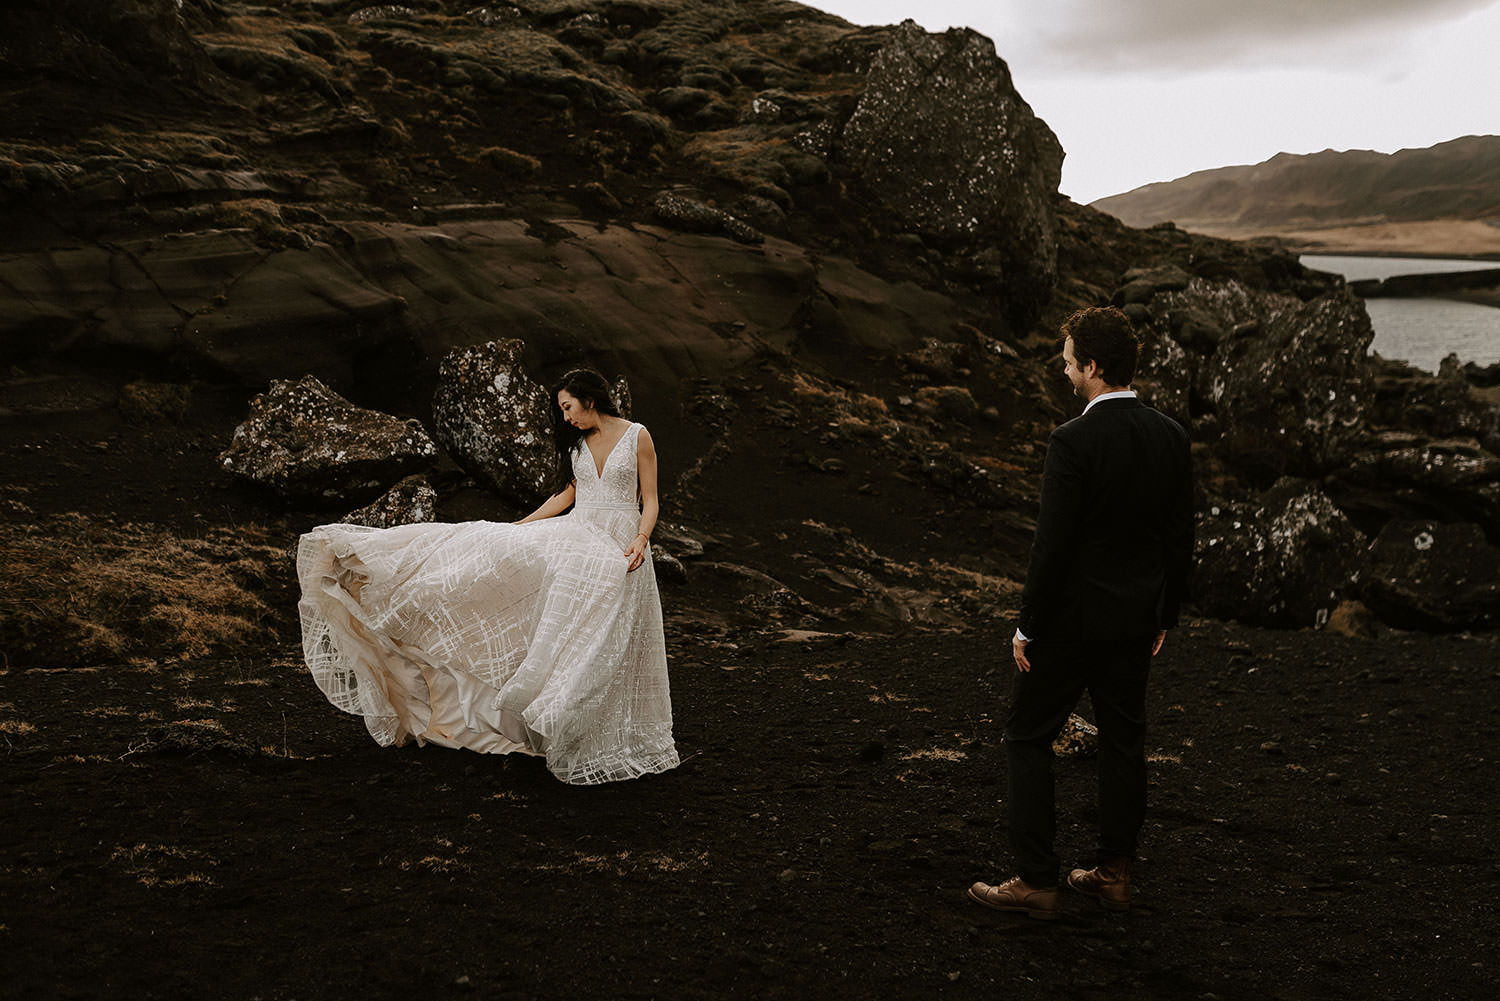 Asian bride's wedding dress blows in the wind in Iceland